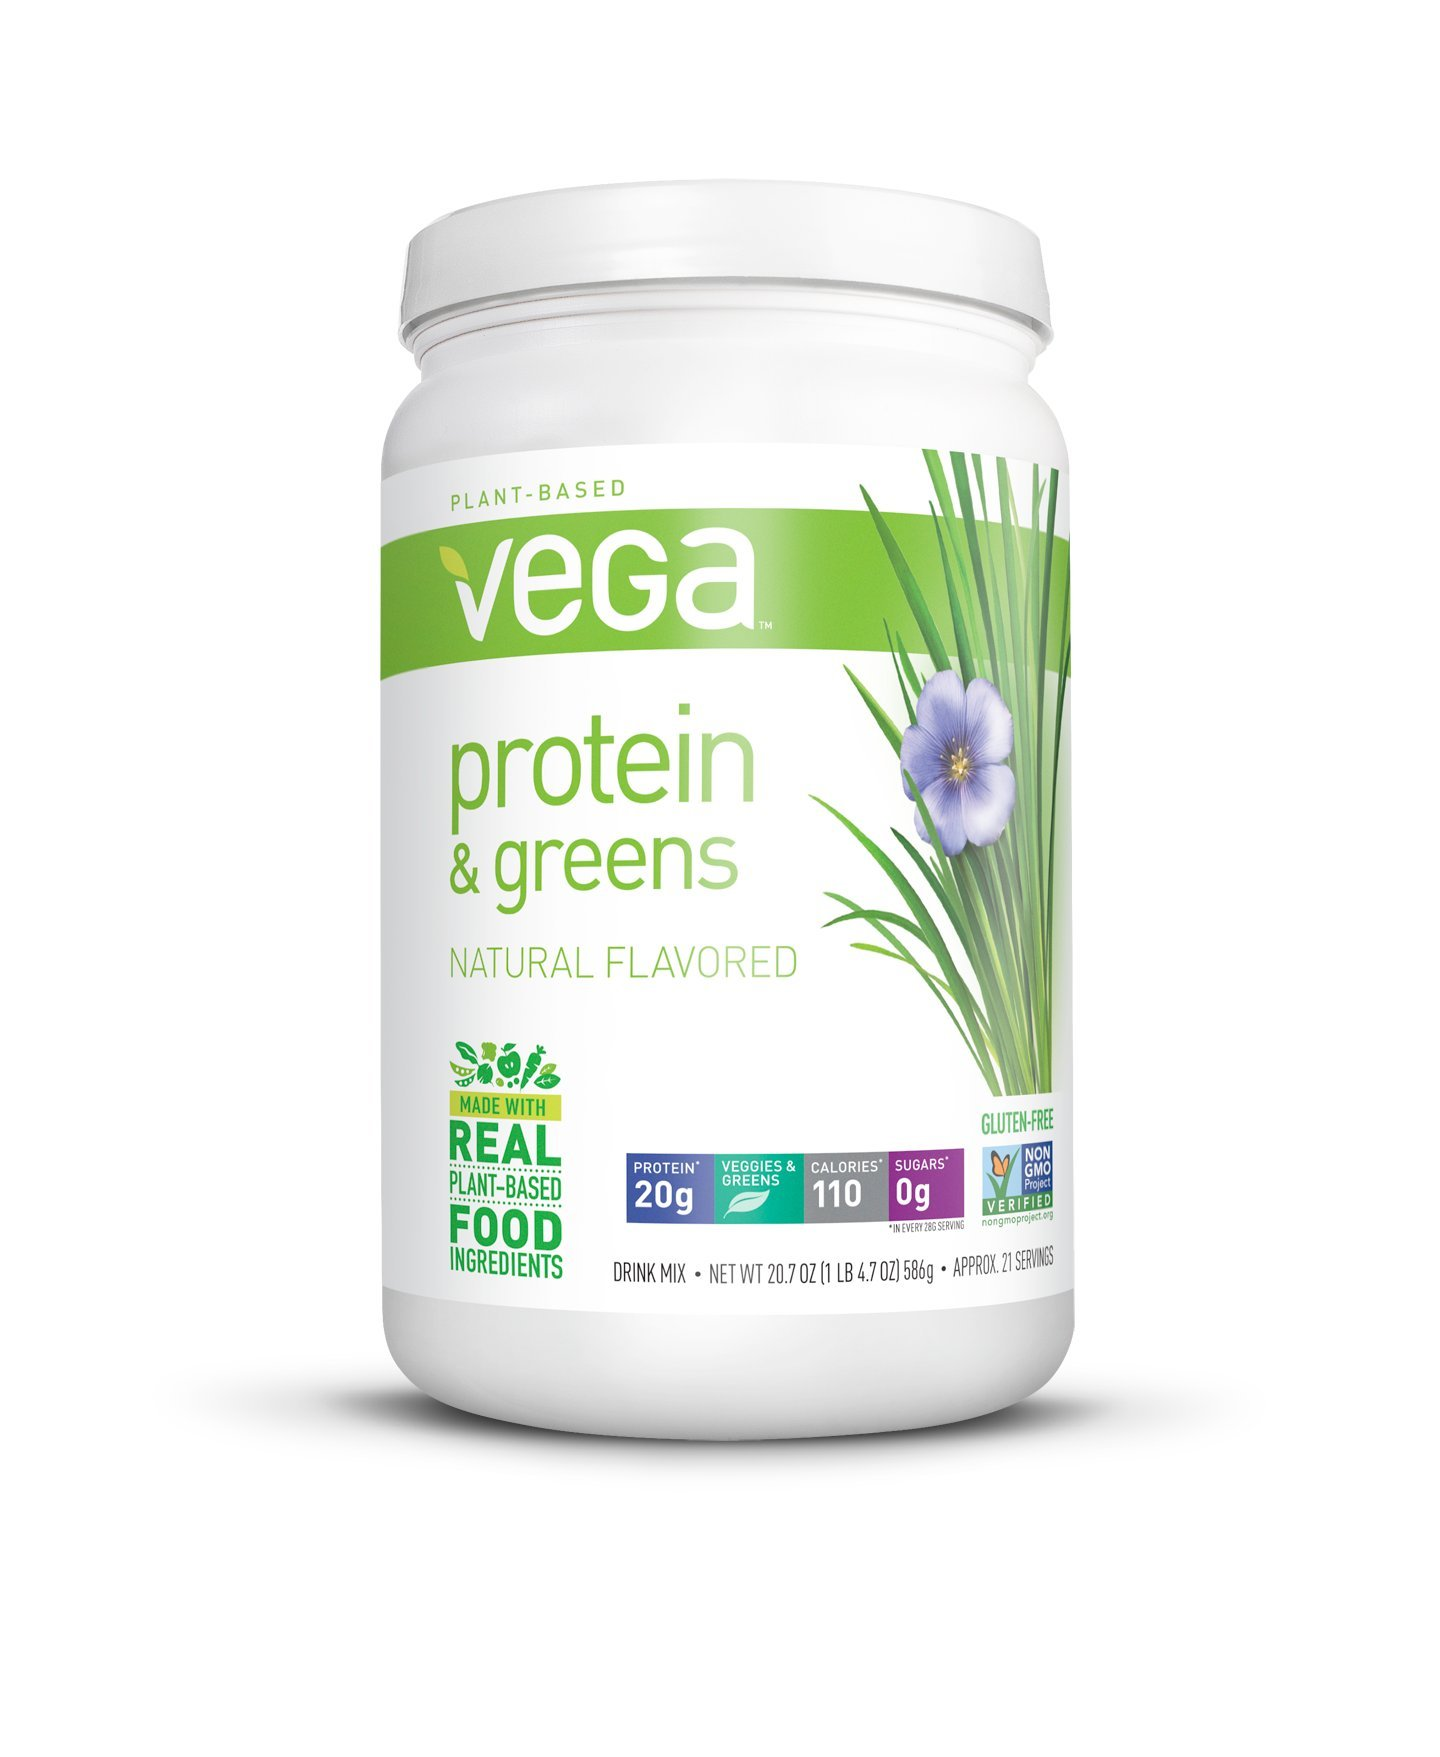 Vega Protein & Greens, Natural, 1.29 lb, 21 Servings